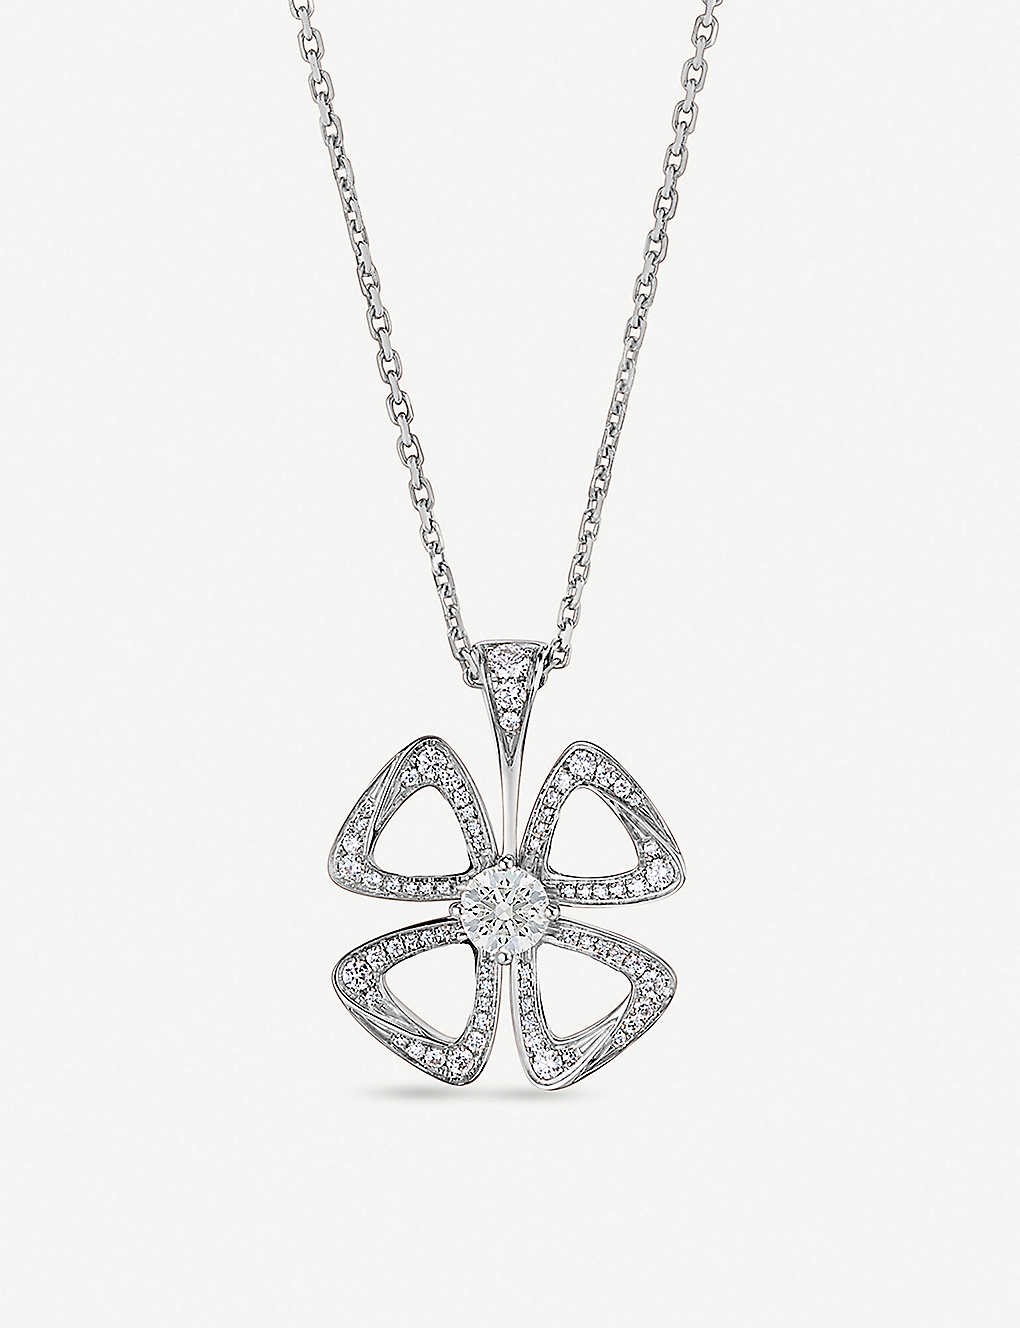 BVLGARI: Fiorever 18ct white-gold and diamond necklace